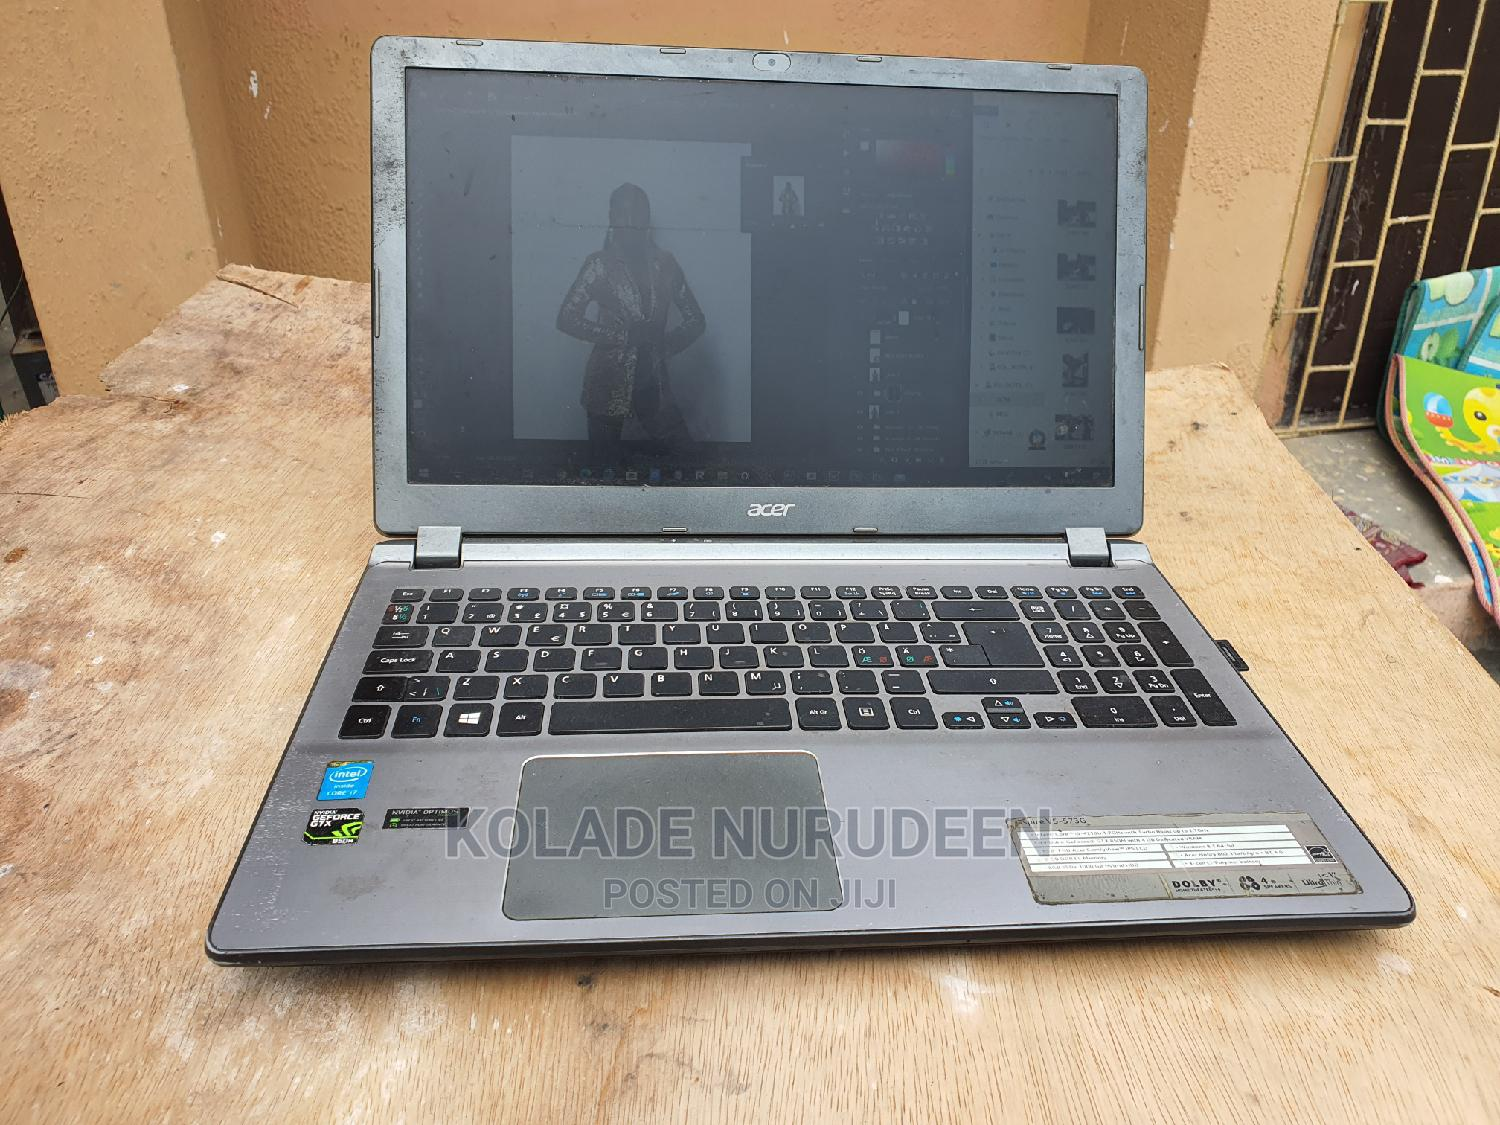 Laptop Acer Aspire V5-573g 8GB Intel Core I7 HDD 256GB | Laptops & Computers for sale in Apapa, Lagos State, Nigeria